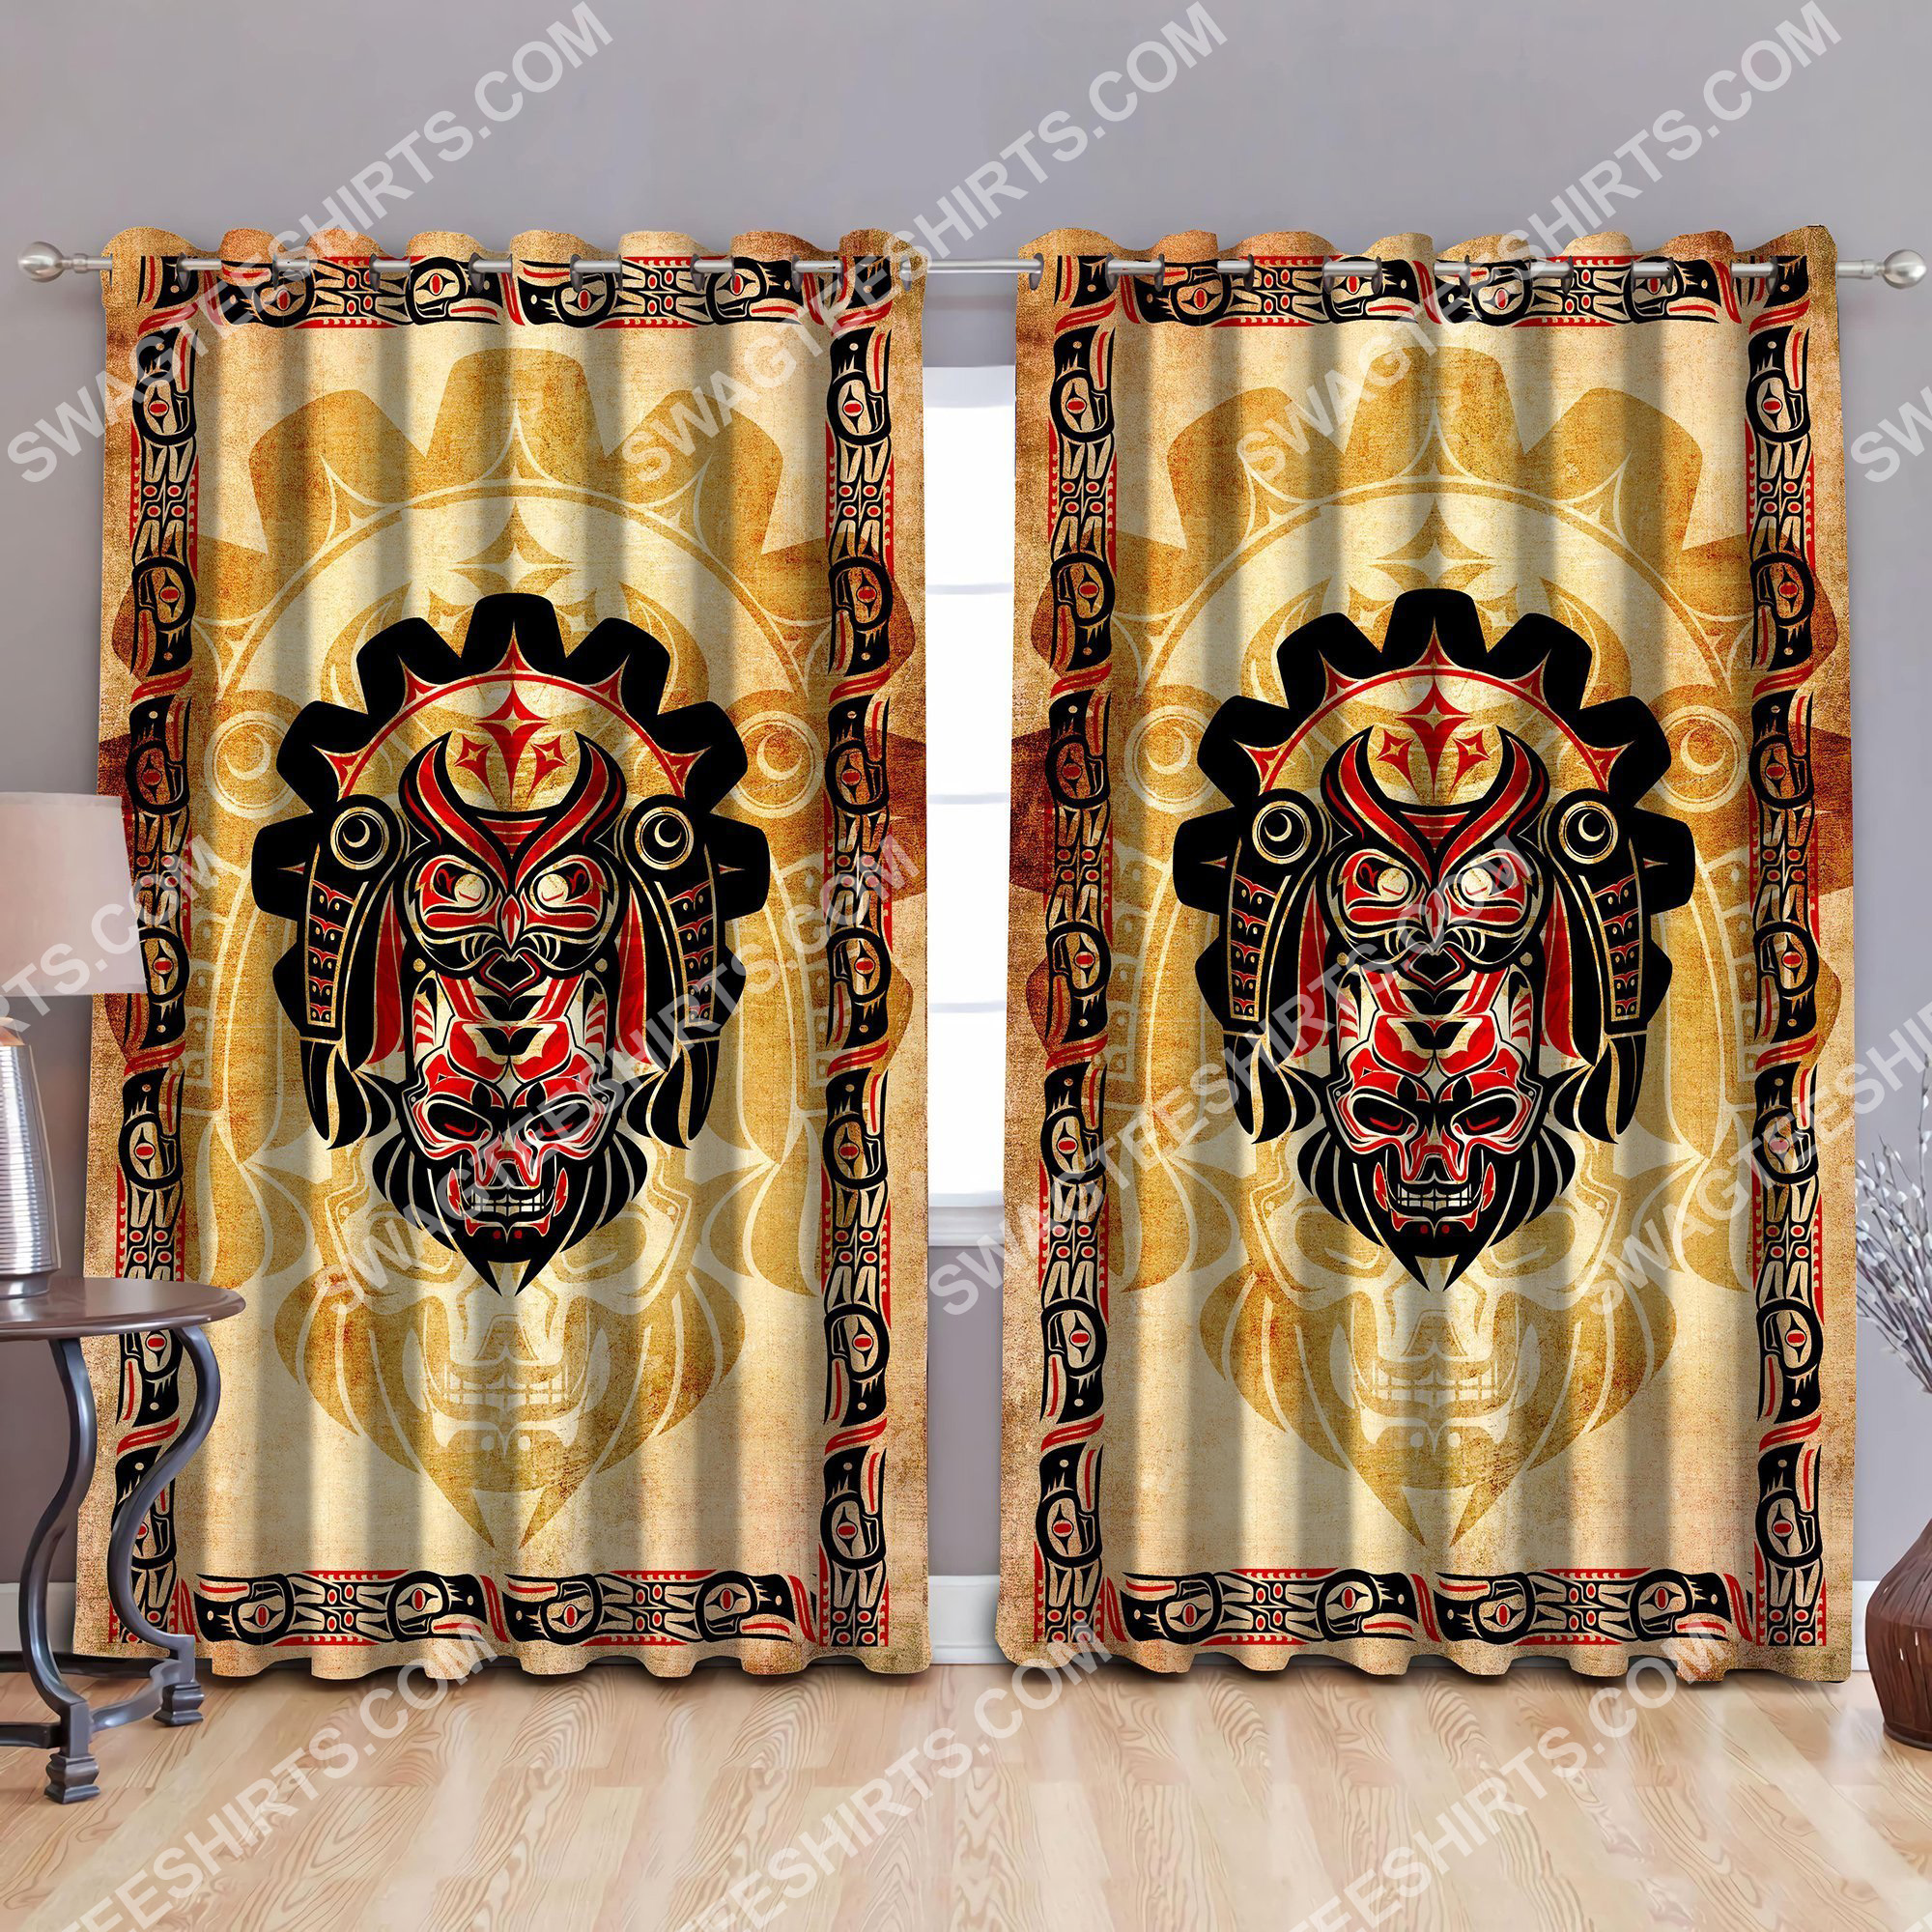 haida indians all over printed window curtains 3 - Copy